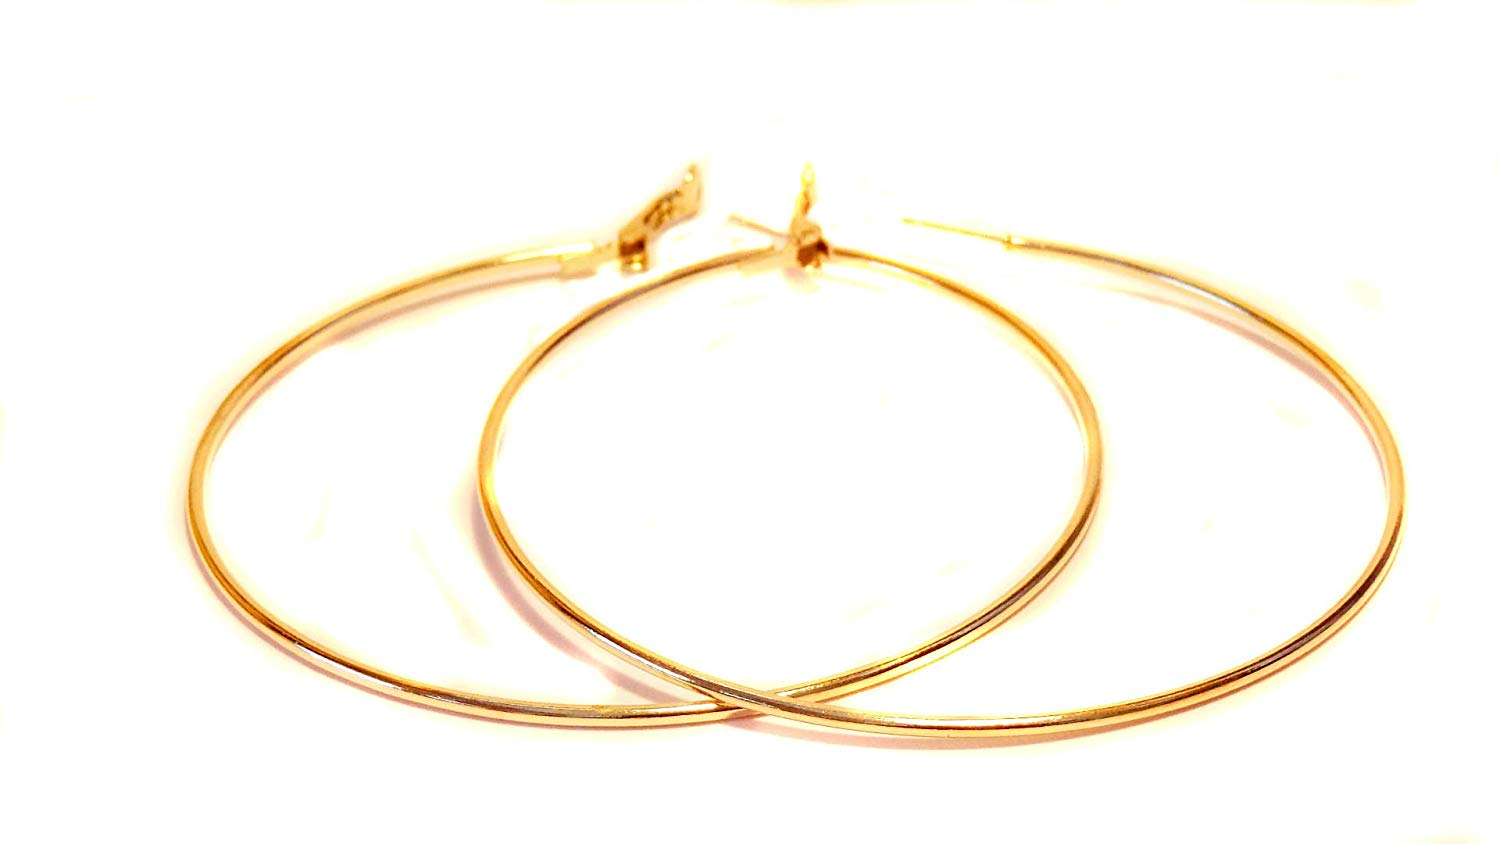 Get Quotations Large Hoop Earrings 3 Inch Gold Tone Simple Thin Hoops